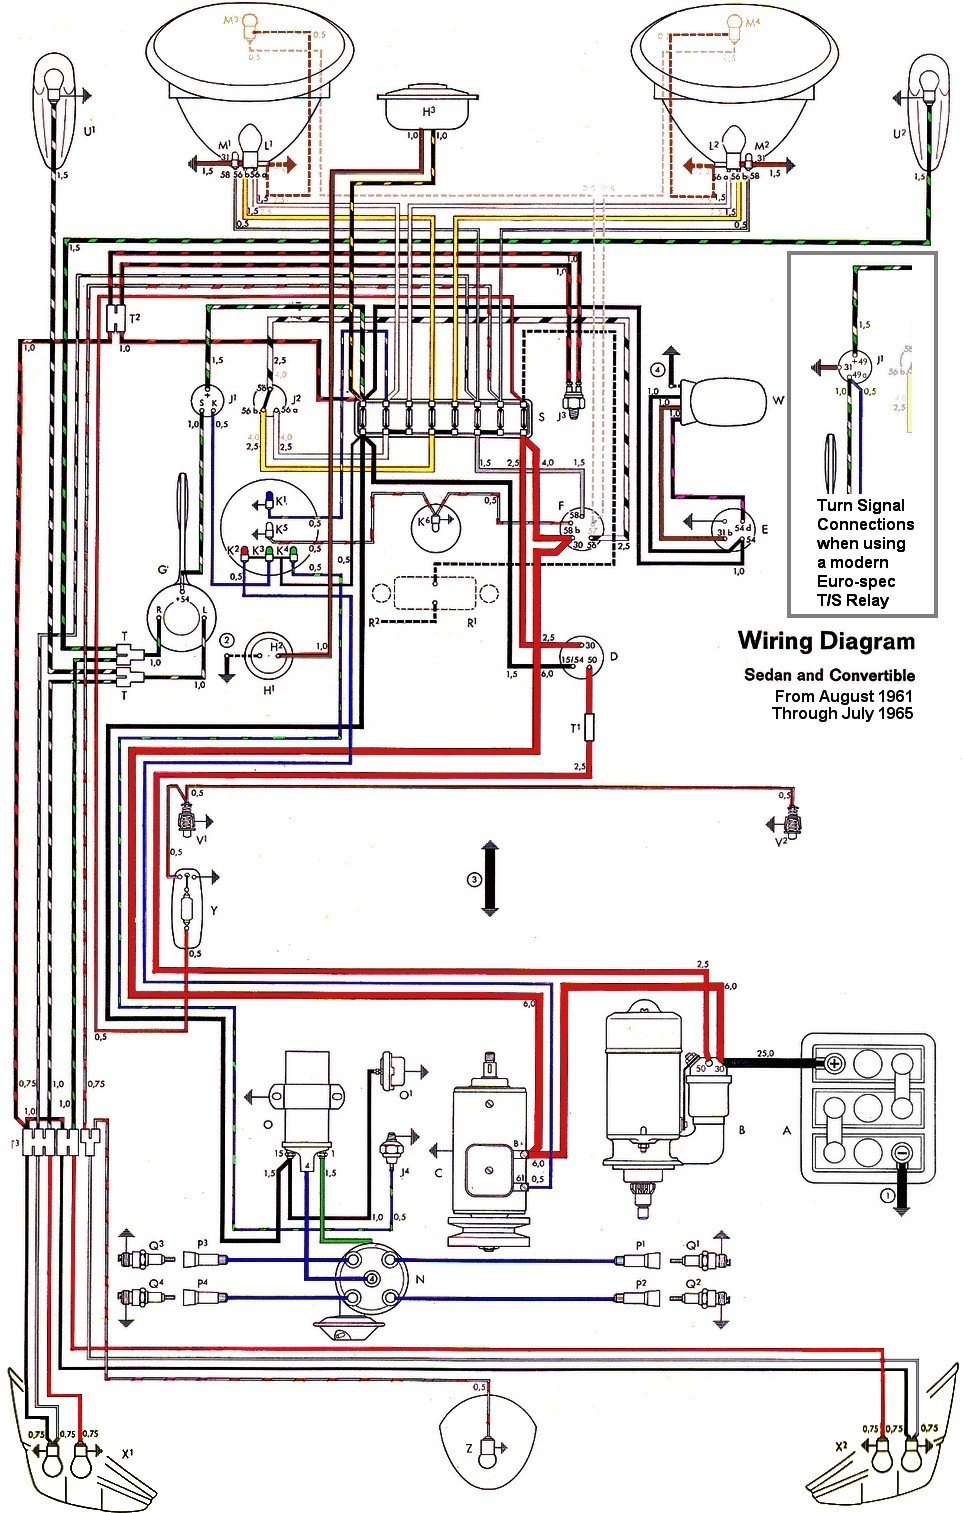 bug_62 65withinset thesamba com type 1 wiring diagrams 1971 vw beetle wiring diagram at panicattacktreatment.co